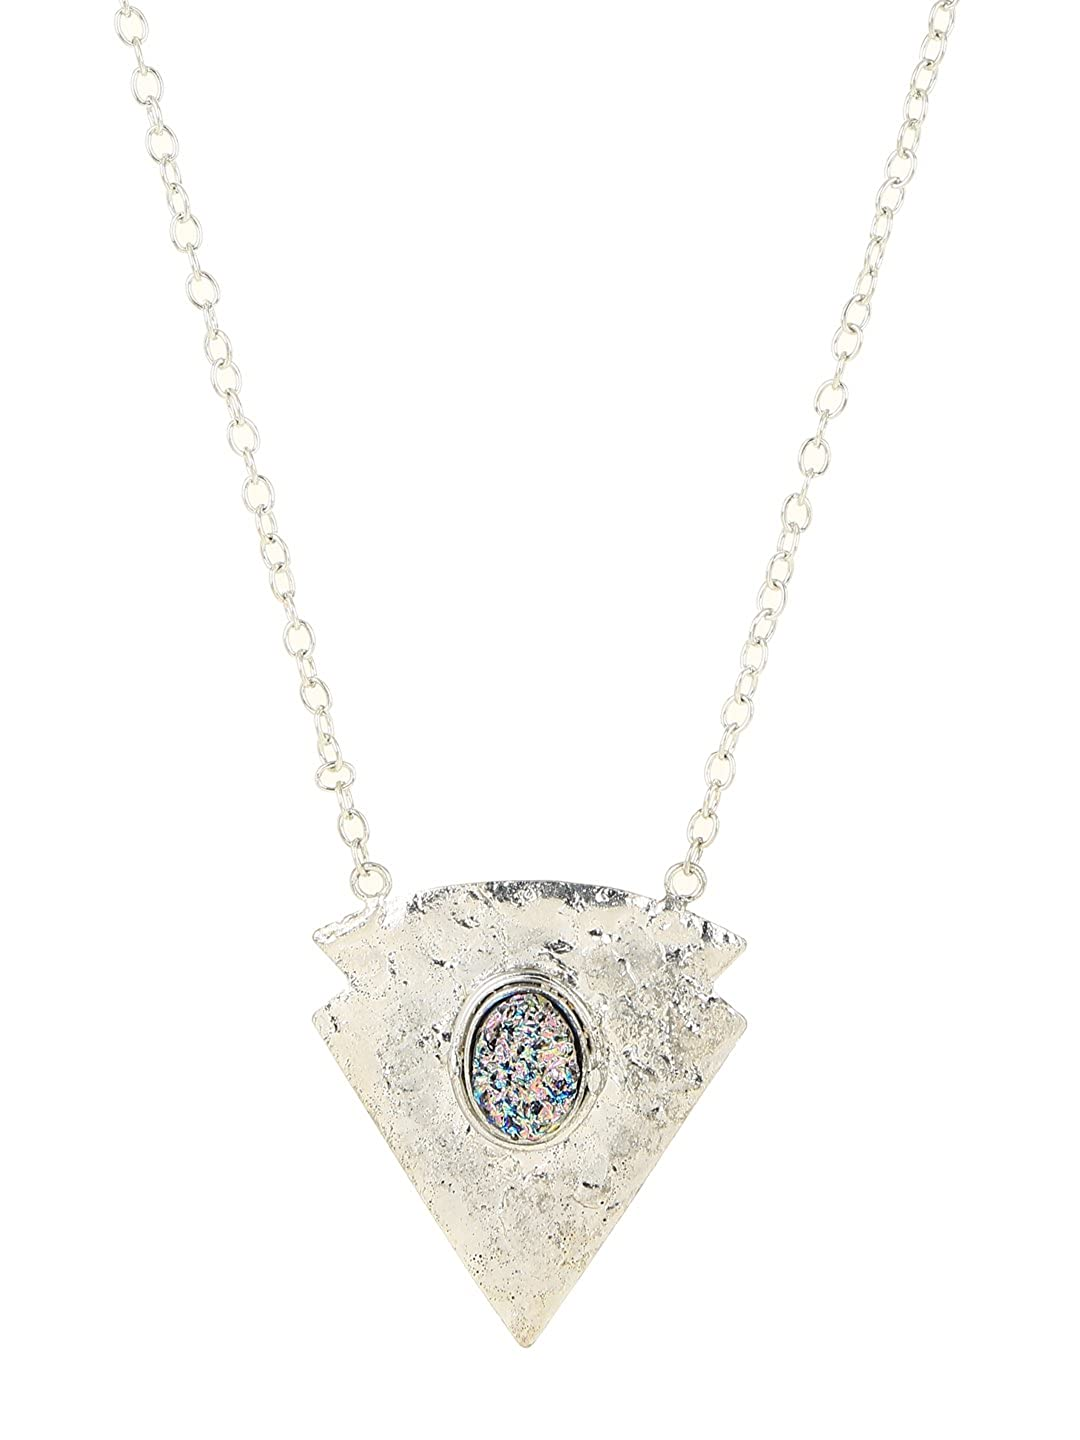 zerokaata Inverted Triangle Chain Necklaces for Women